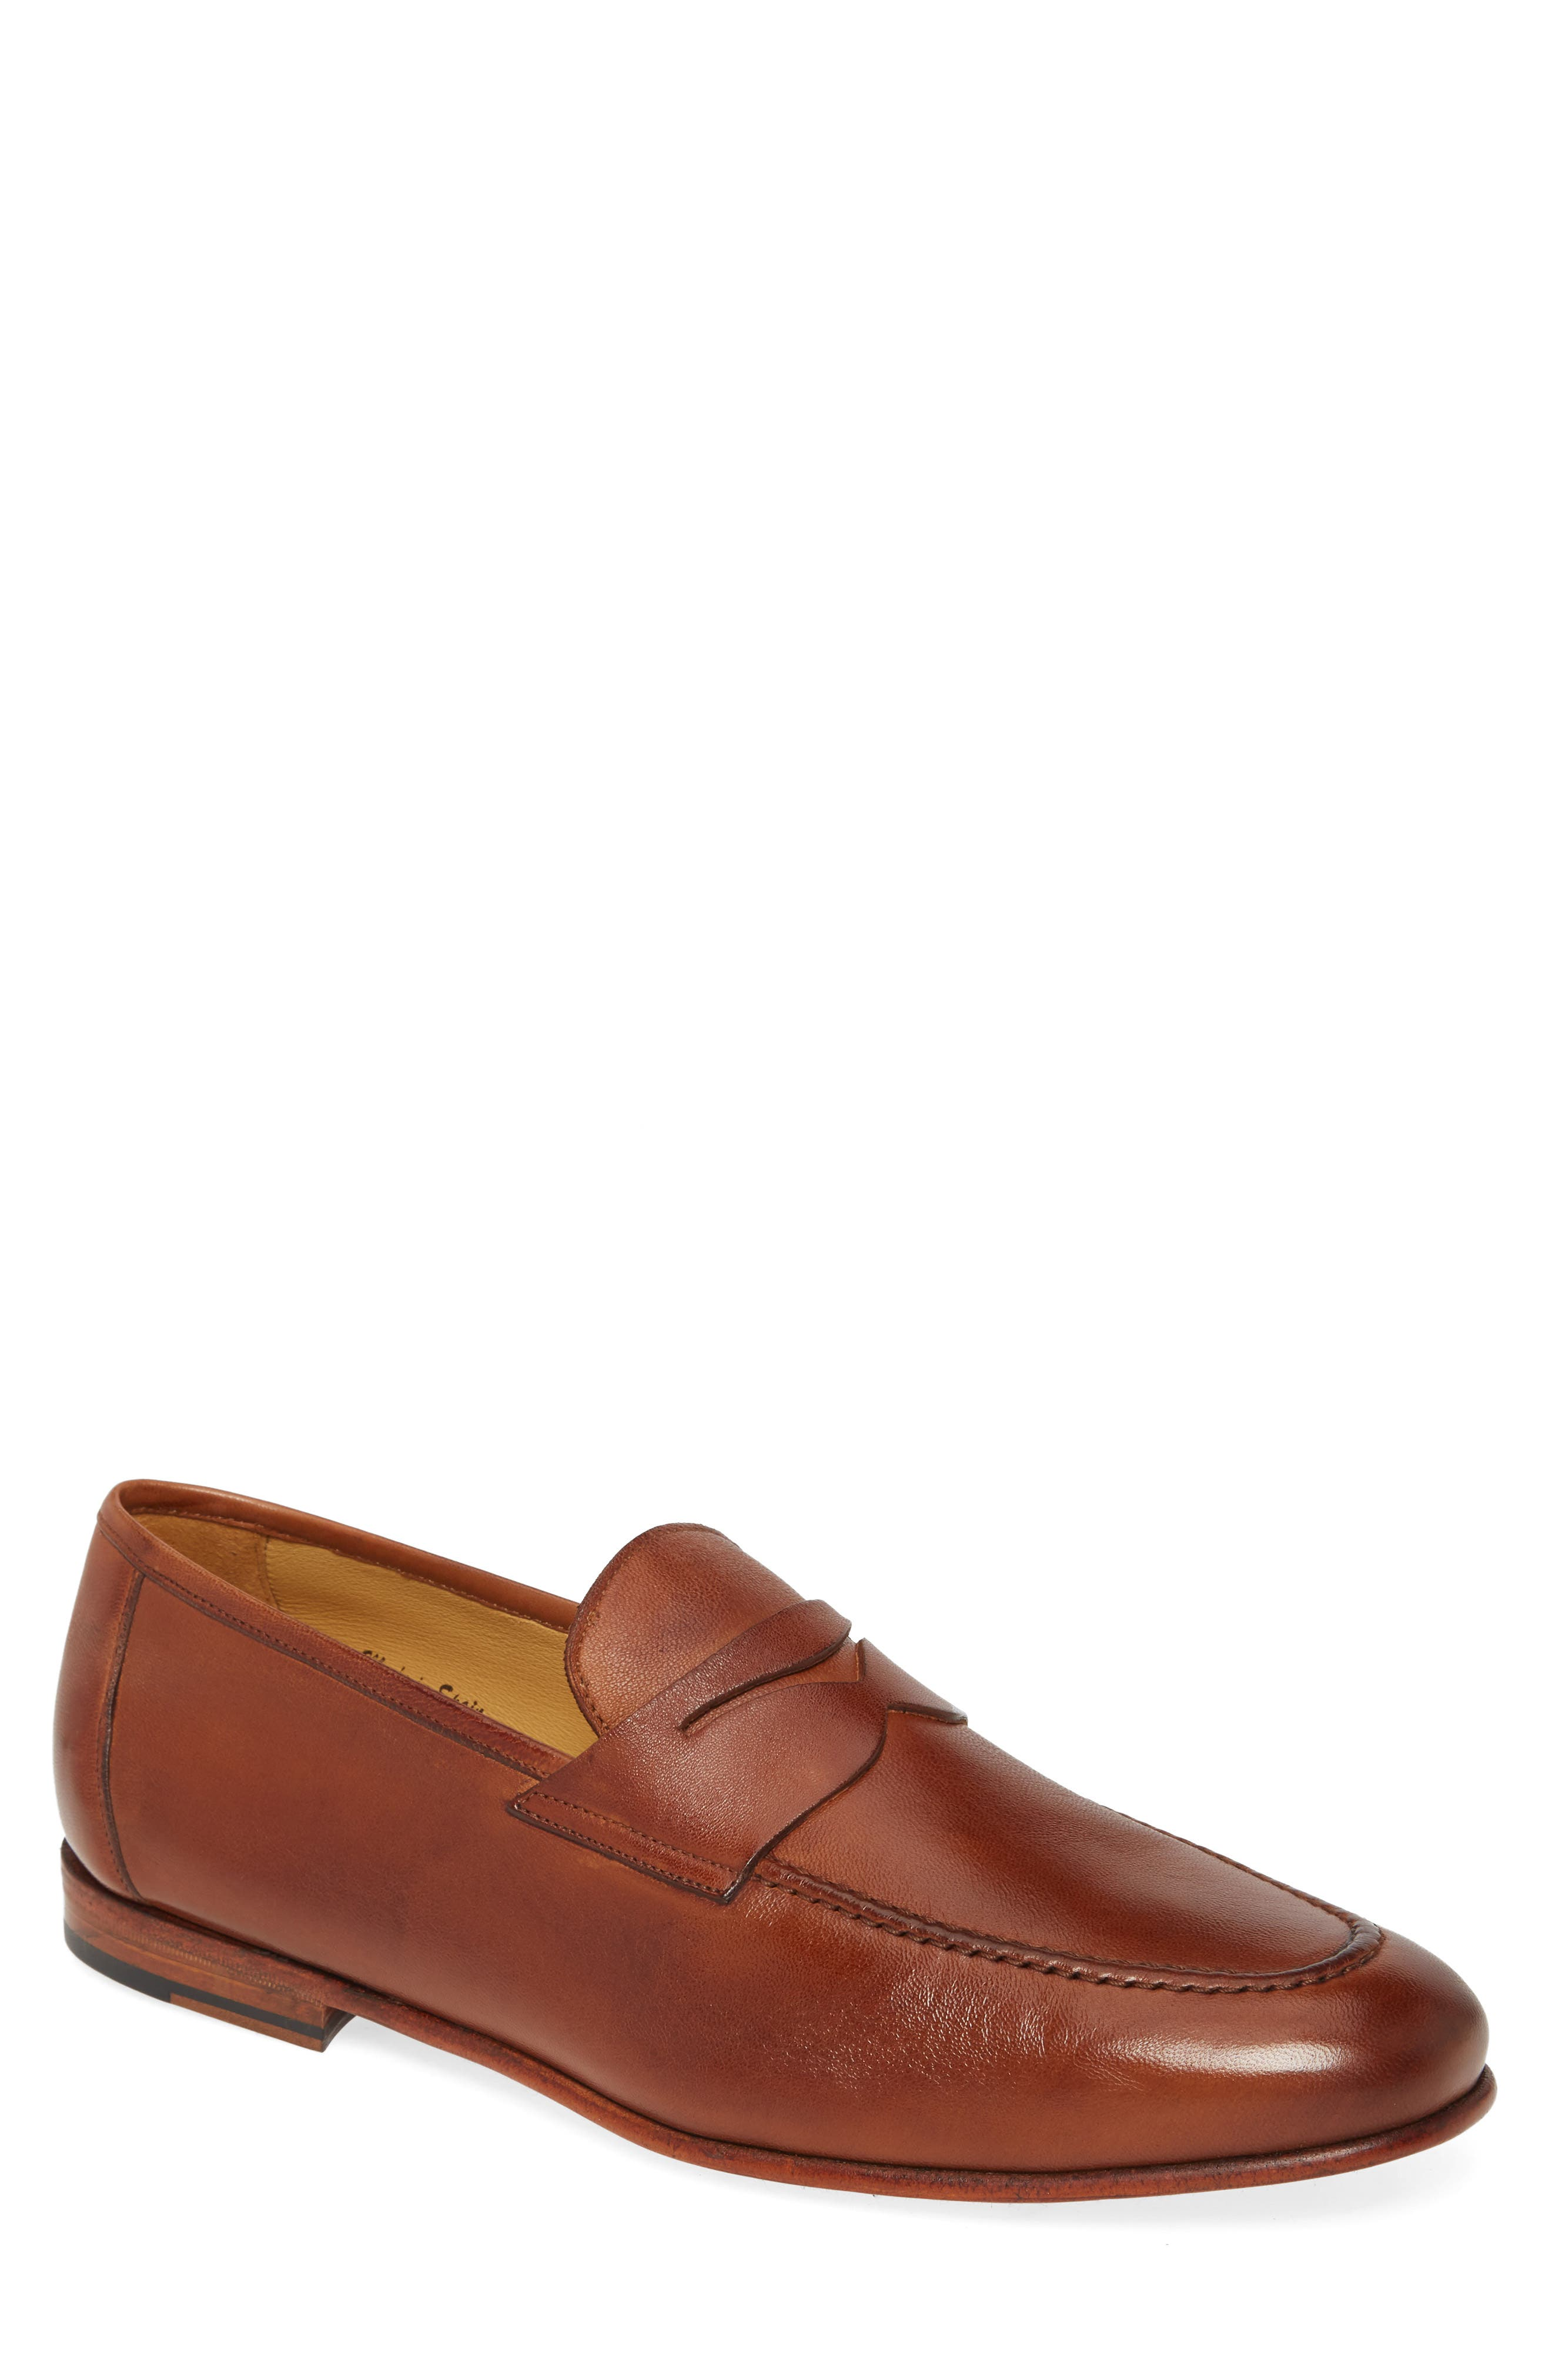 Pompei Penny Loafer